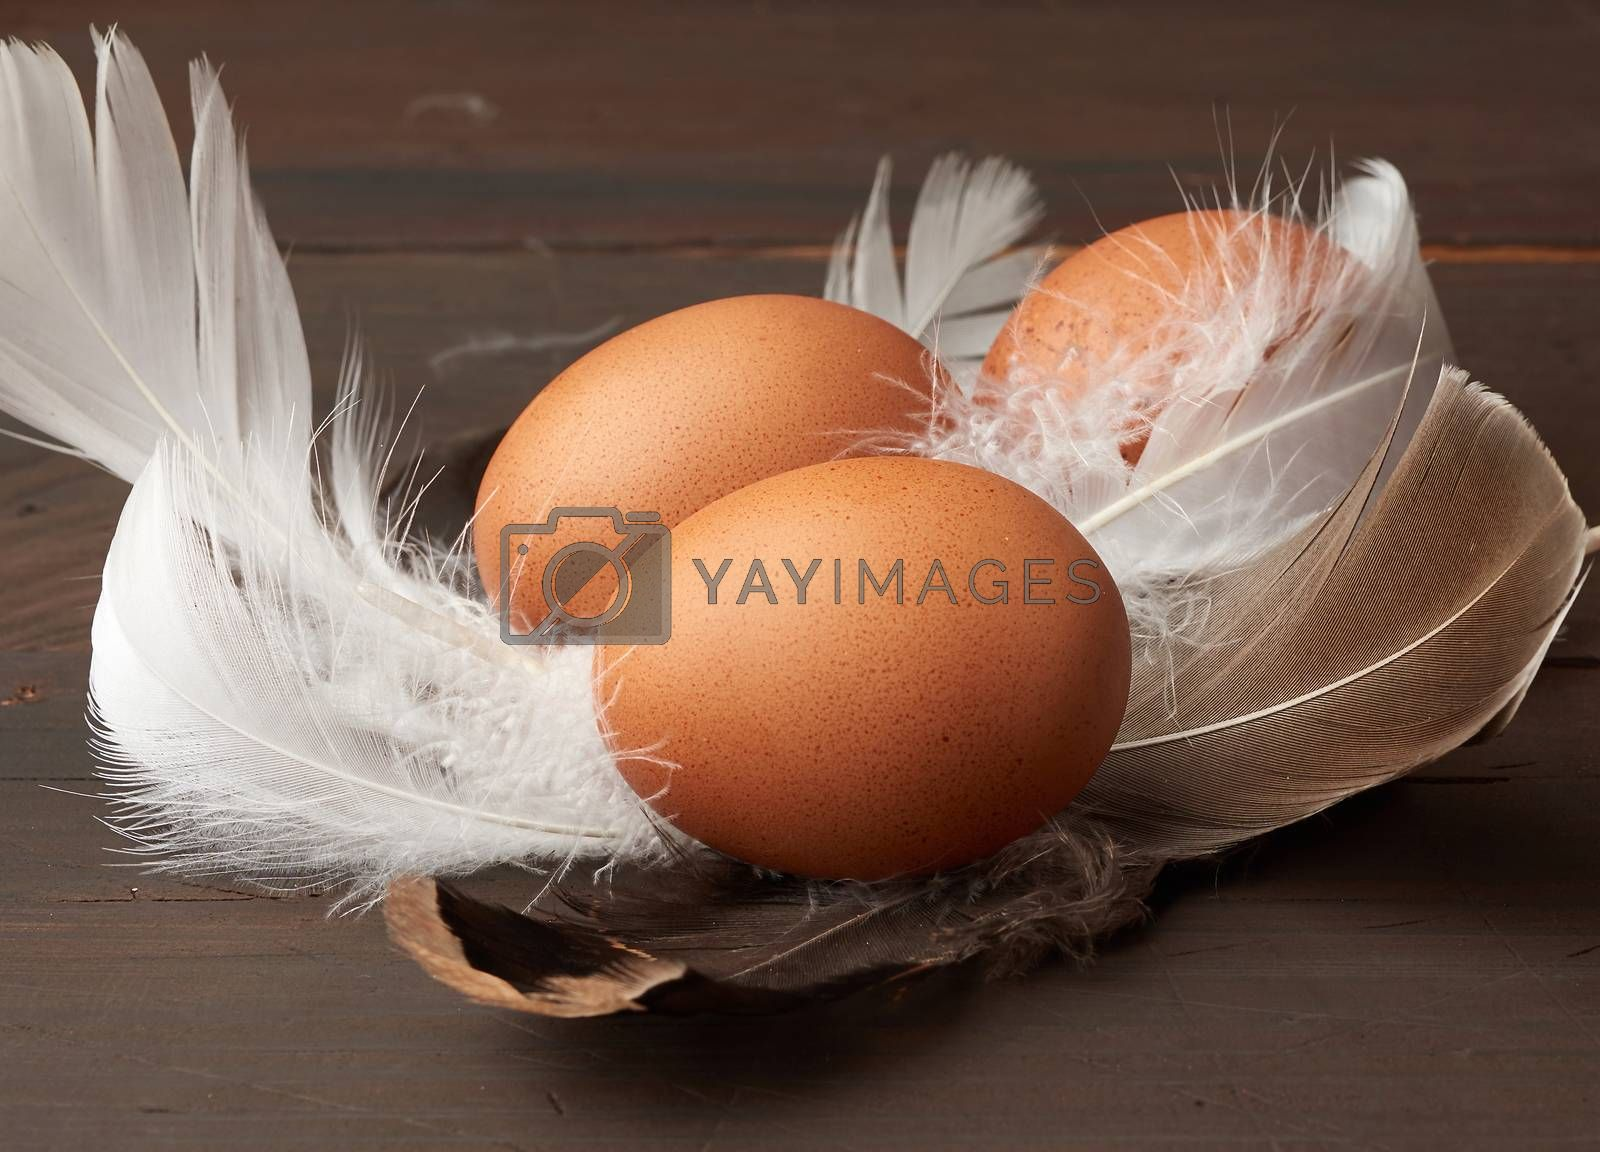 brown whole chicken eggs in the middle of white feathers on a wo by ndanko